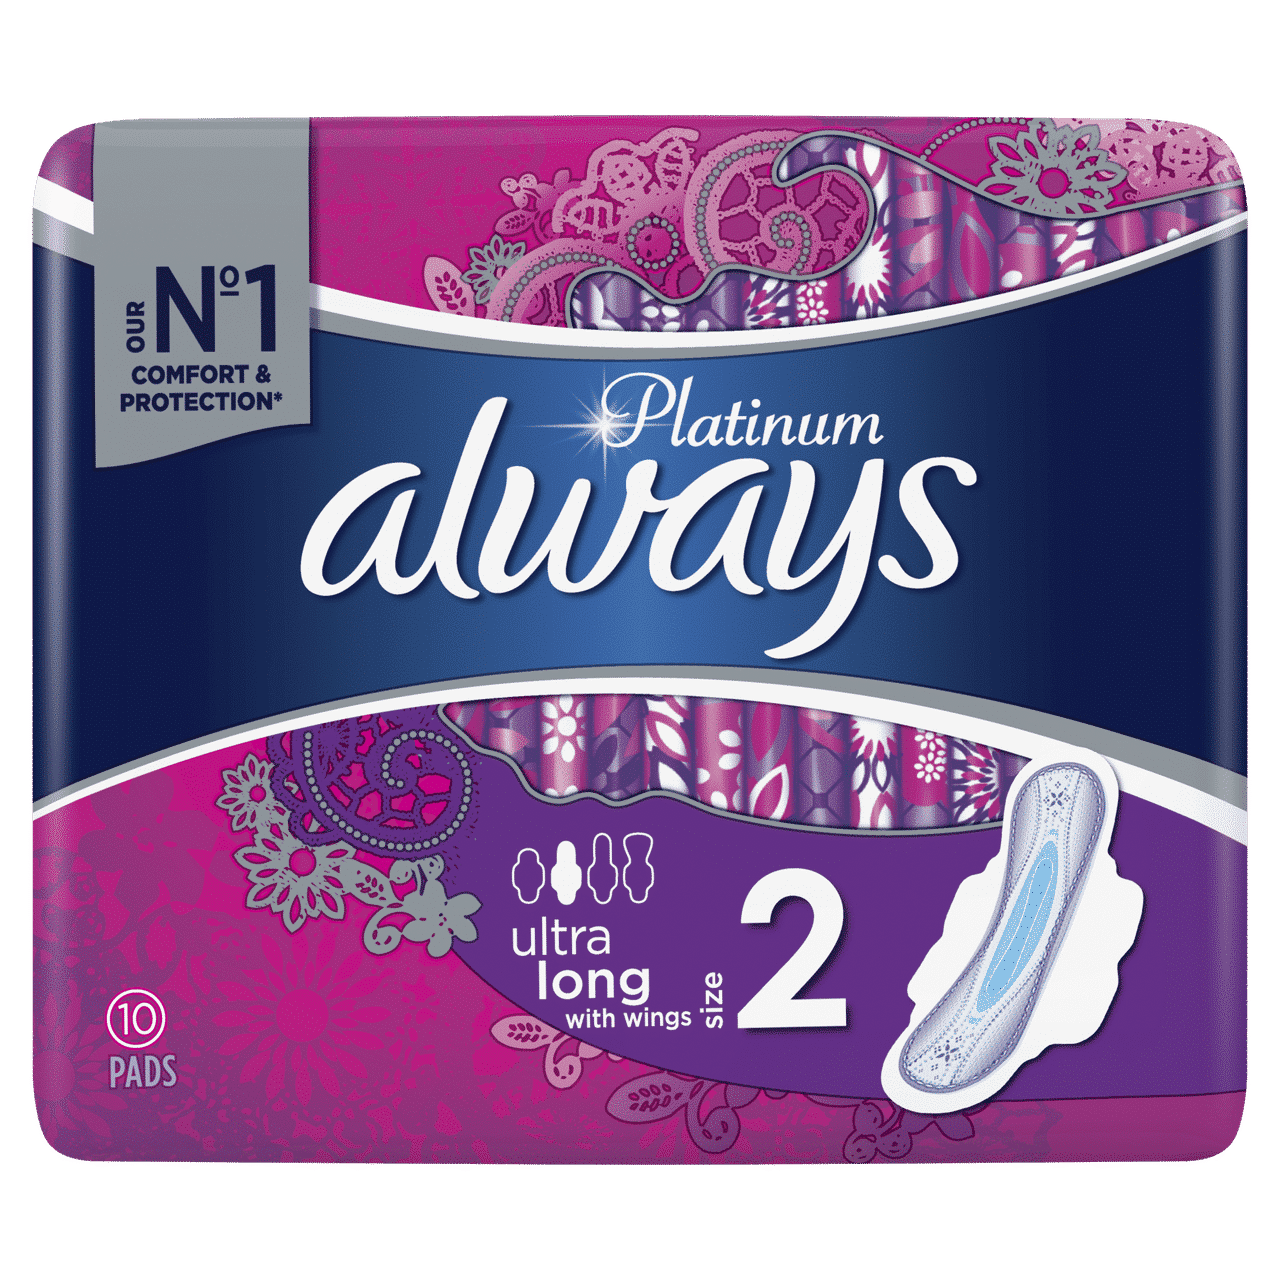 ALWAYS PLATINUM ULTRA LONG PLUS BY 10 (NEW)